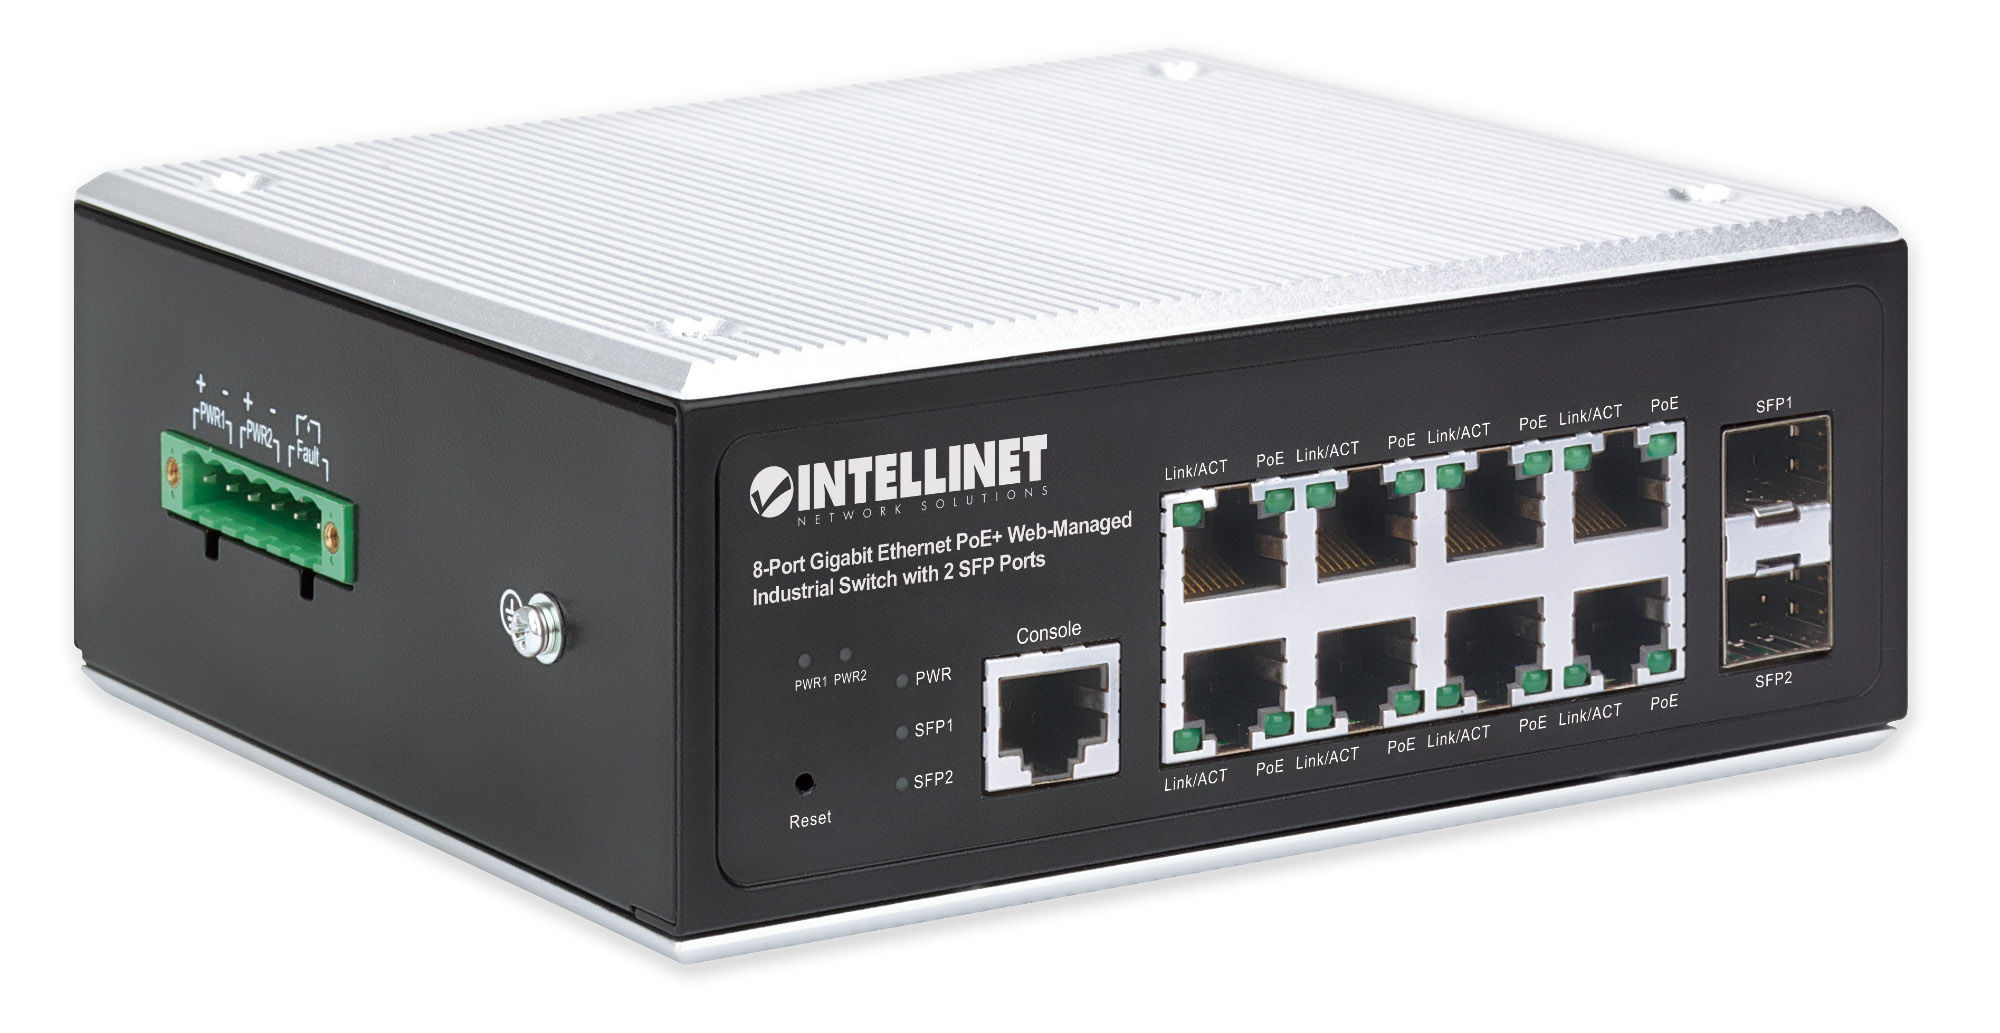 8-Port Gigabit Ethernet PoE+ Web-Managed Industrial Switch with 2 SFP Ports